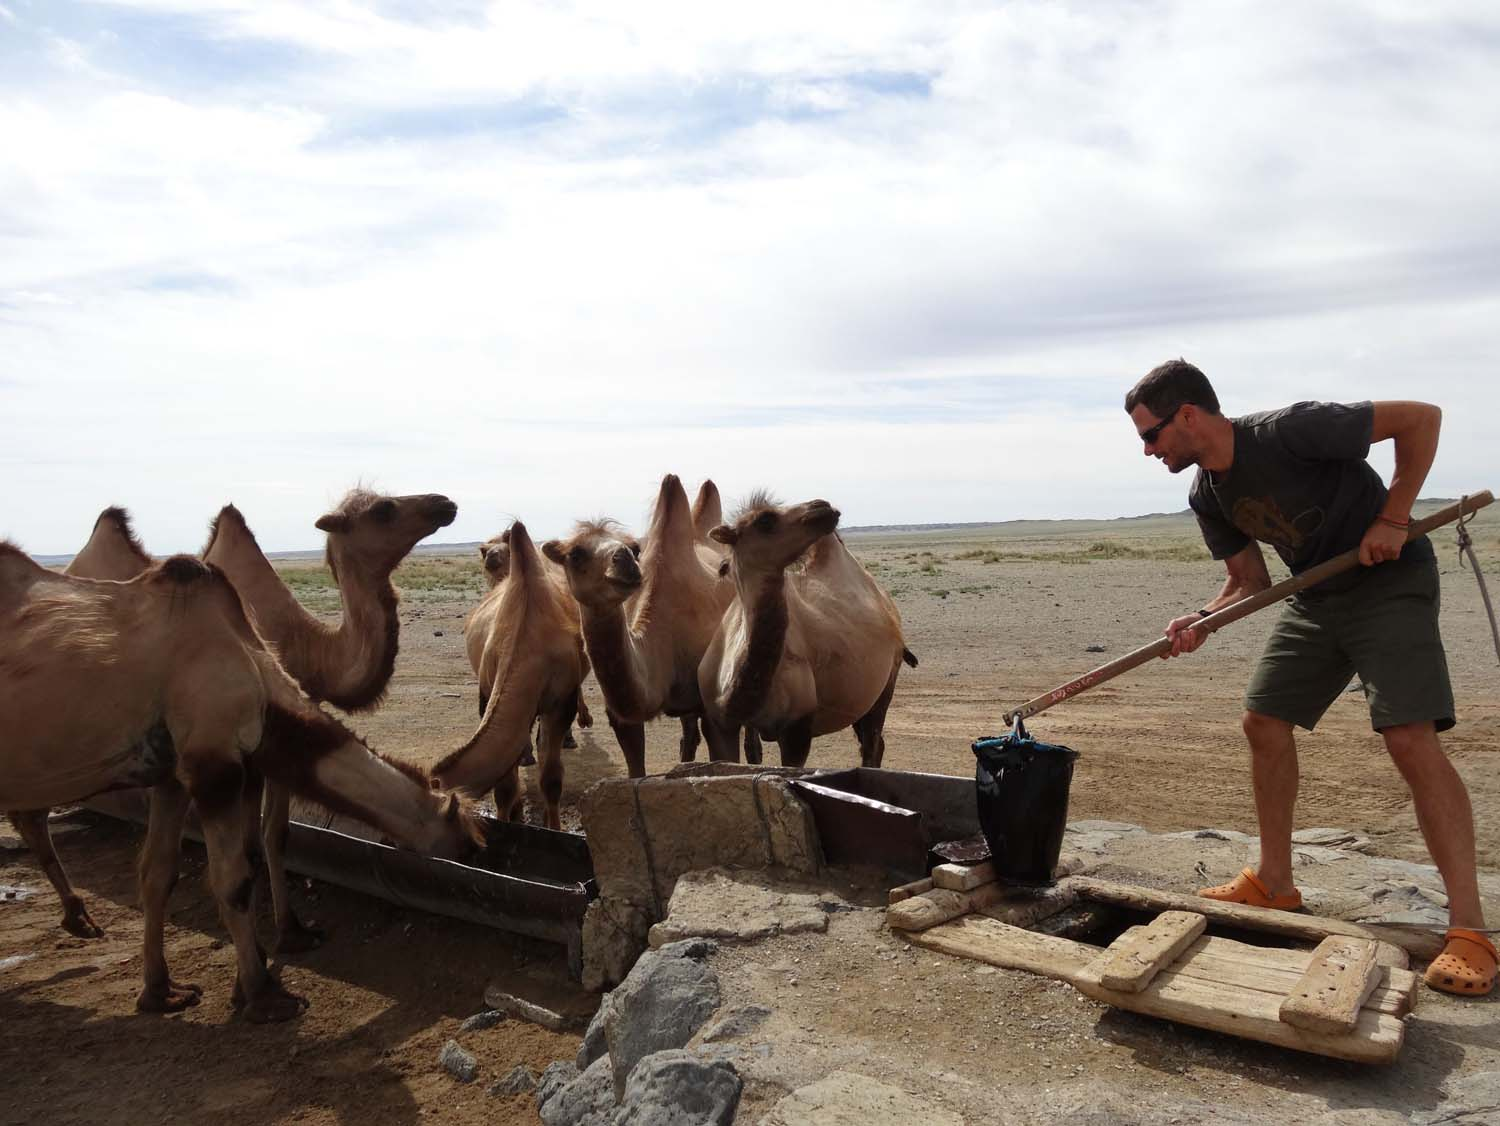 Jon using the well to give the camels a drink